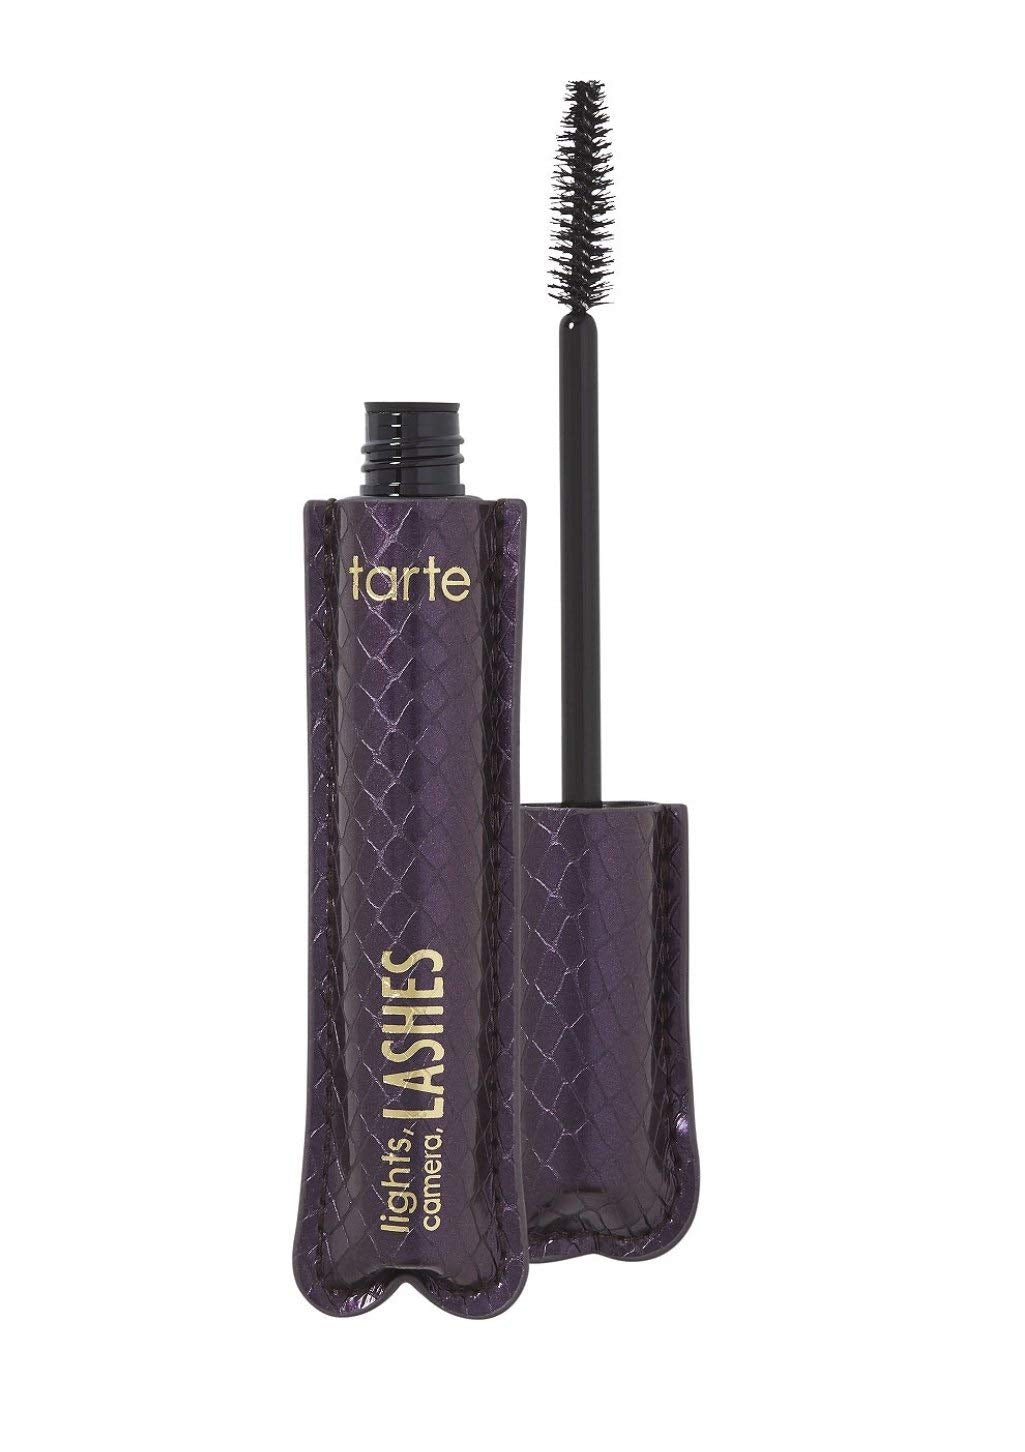 d617af12c5d Other Makeup & Nail Care - Tarte Lights, Camera, Splashes ...